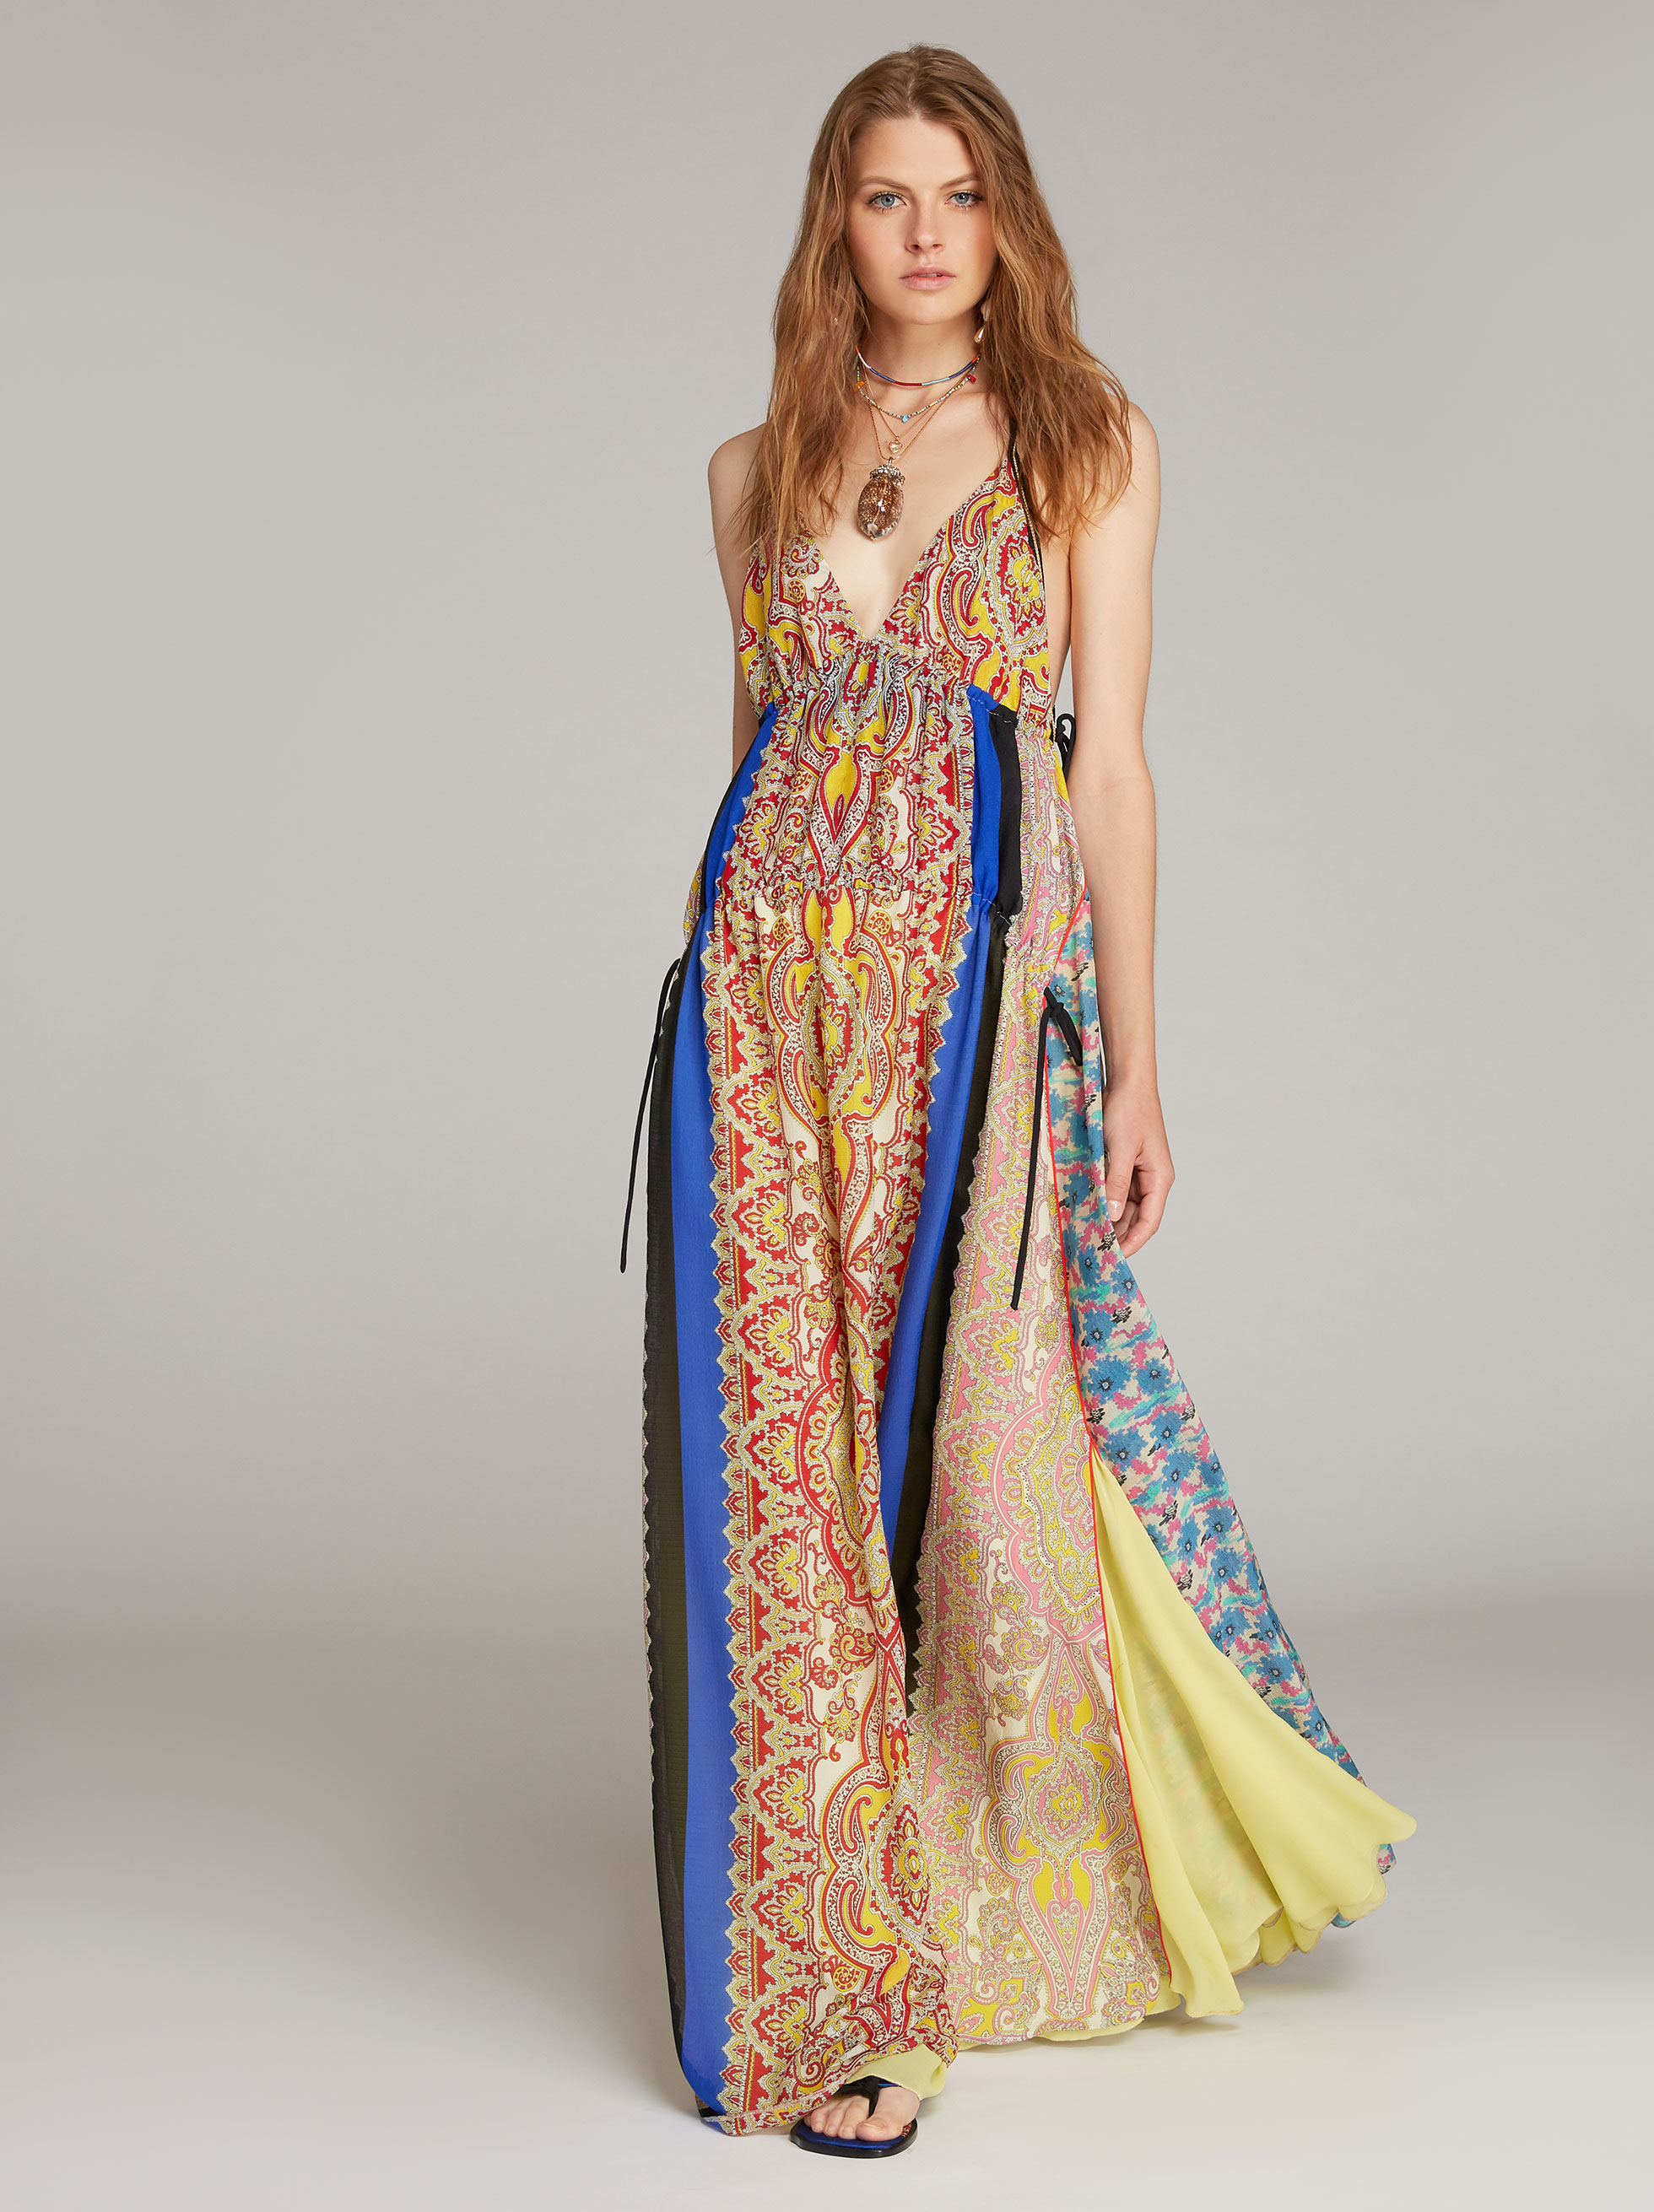 Dresses Woman: Silk Paisley-print Long Dress | Etro